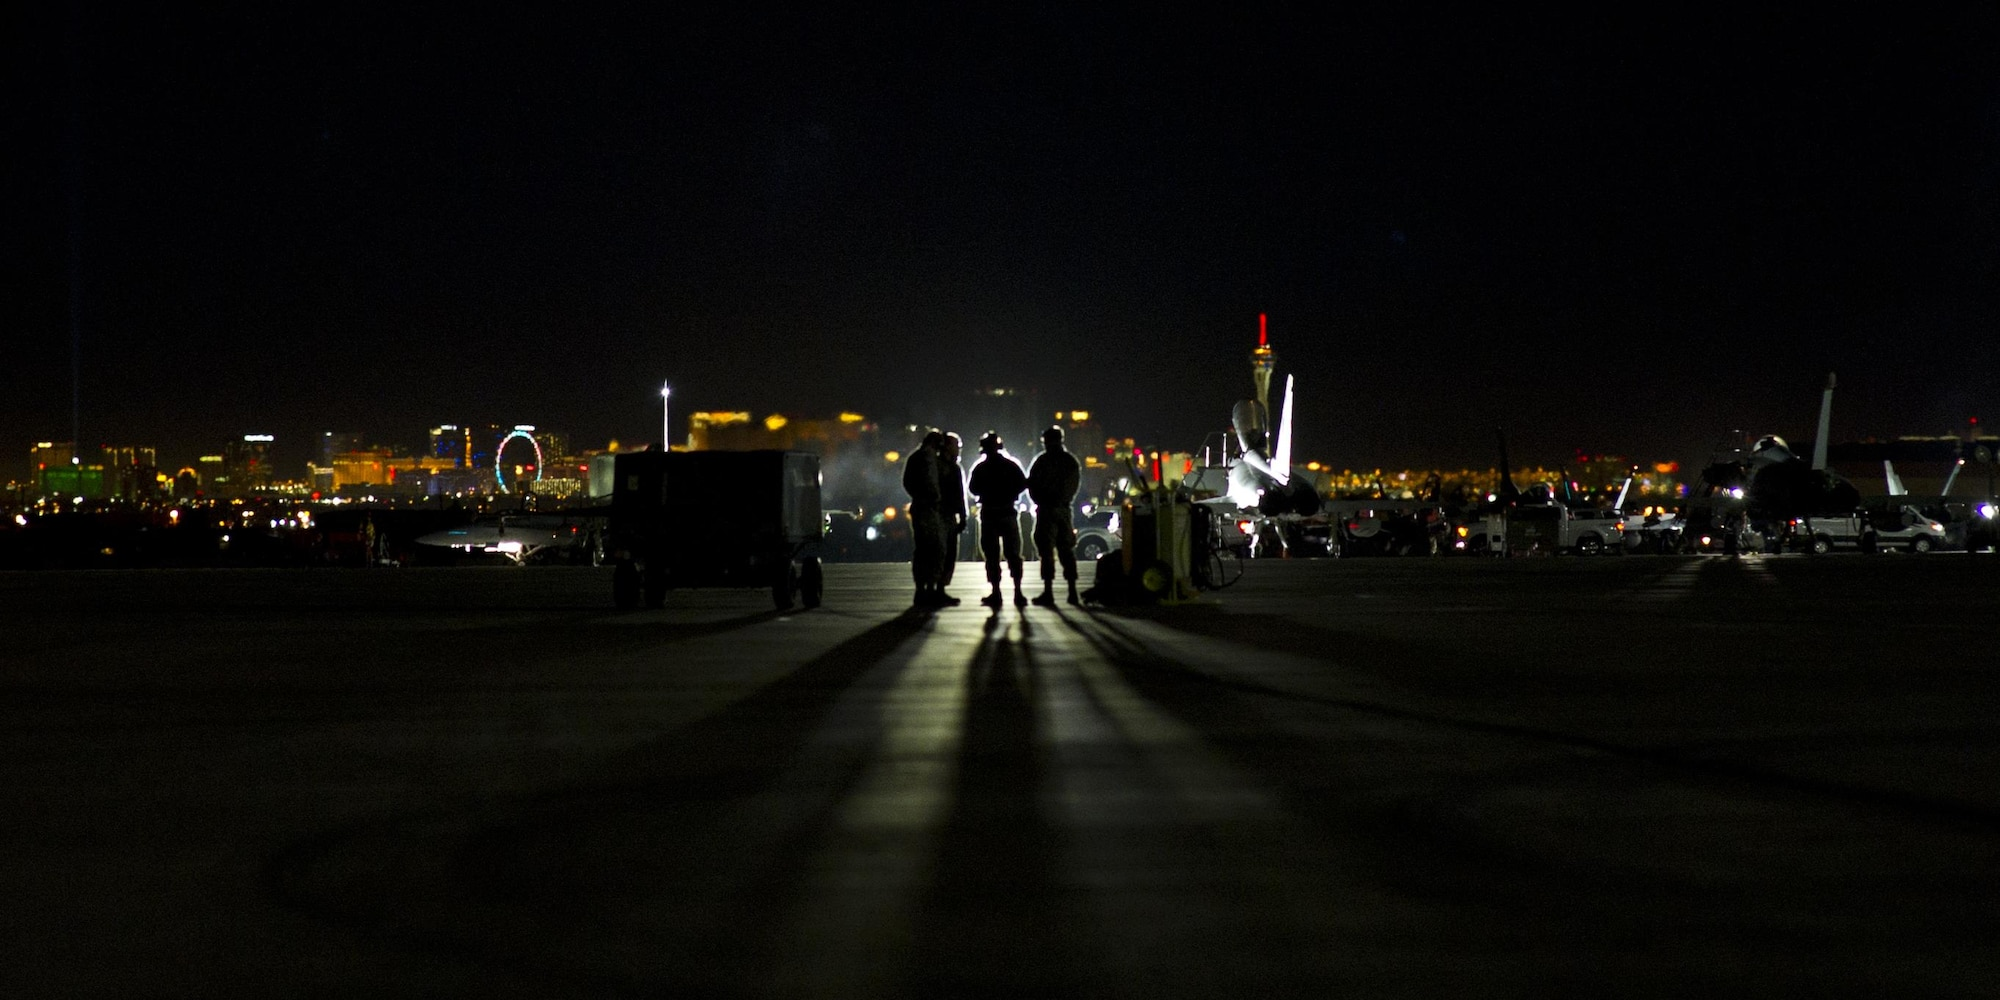 Four Airmen stand on the flightline looking toward the lights of Las Vegas Jan. 26, 2016, at Nellis Air Force Base, Nev. The Airmen were part of more than 3,000 personnel from over 30 units, including squadrons from Australia and the U.K., to participate in Red Flag 16-1. (U.S. Air Force photo/Senior Airman Alex Fox Echols III)